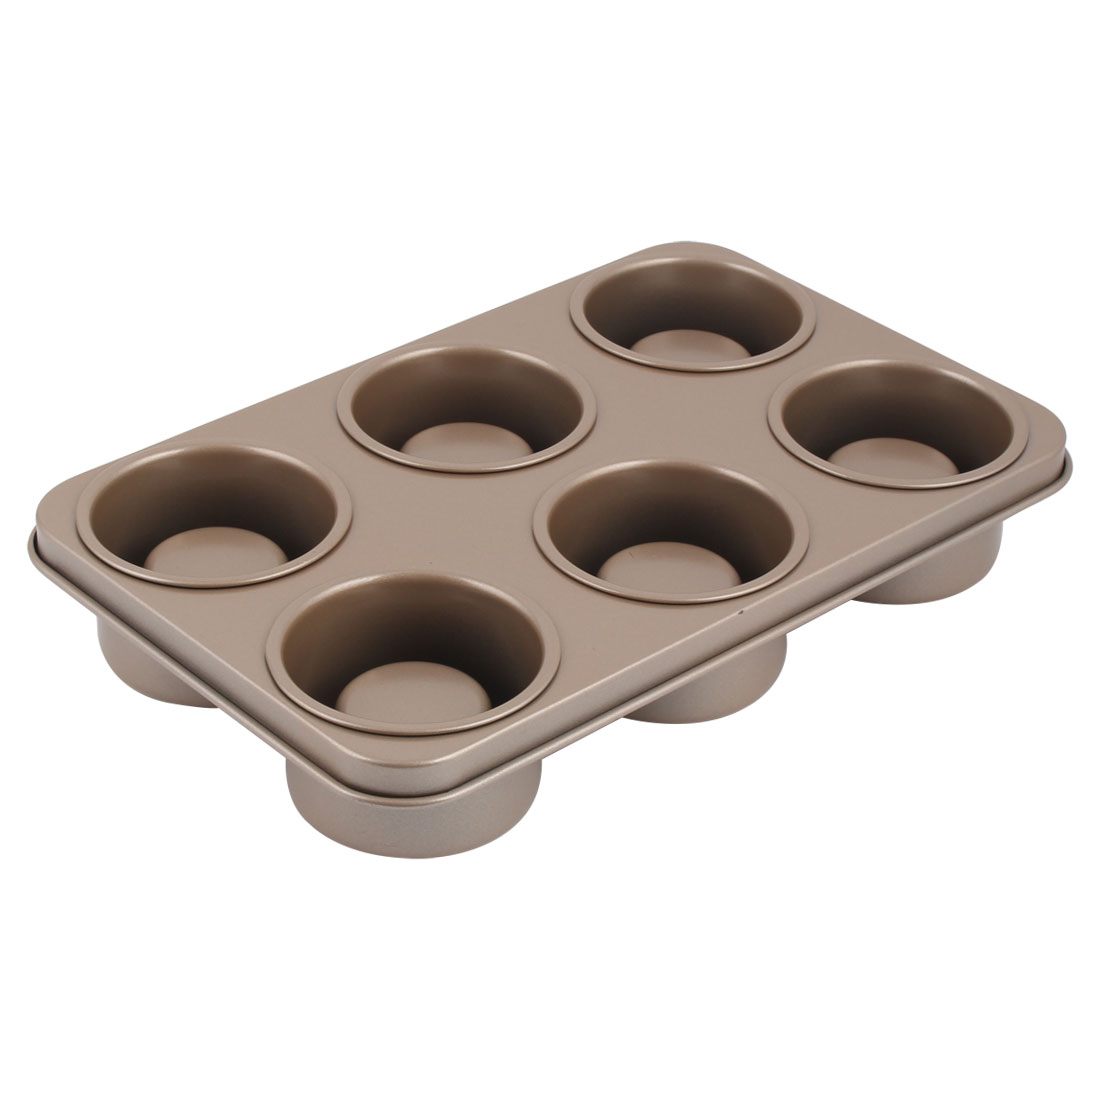 Kitchen Pastry Pie Nonstick 6-Cavity Baking Mold Mould Bakeware Pan Tray